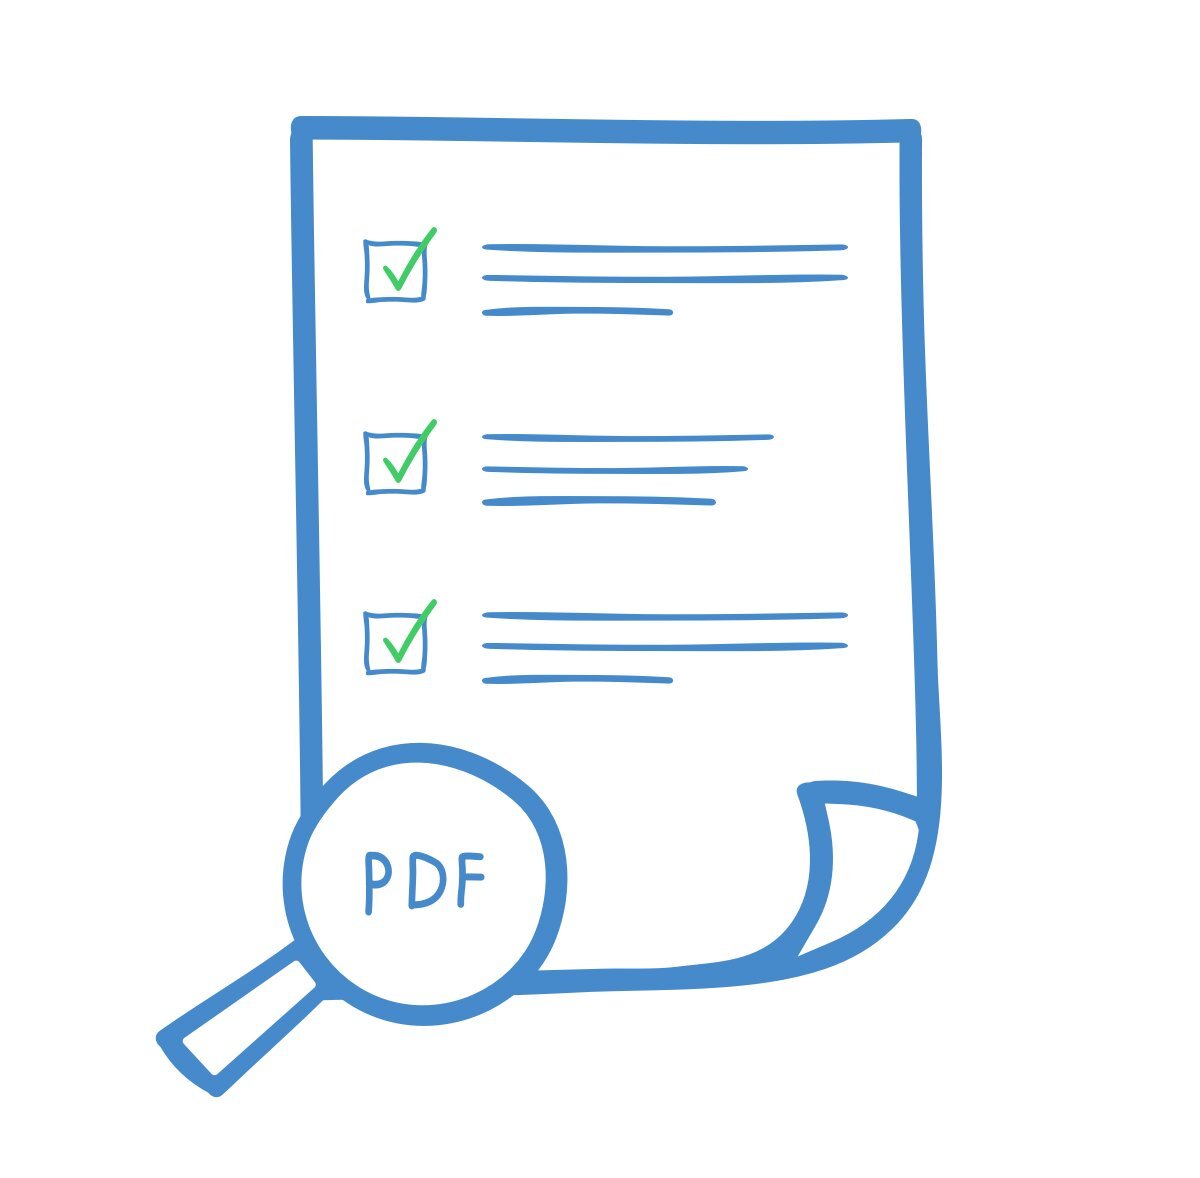 pdf optimization tips for businesses